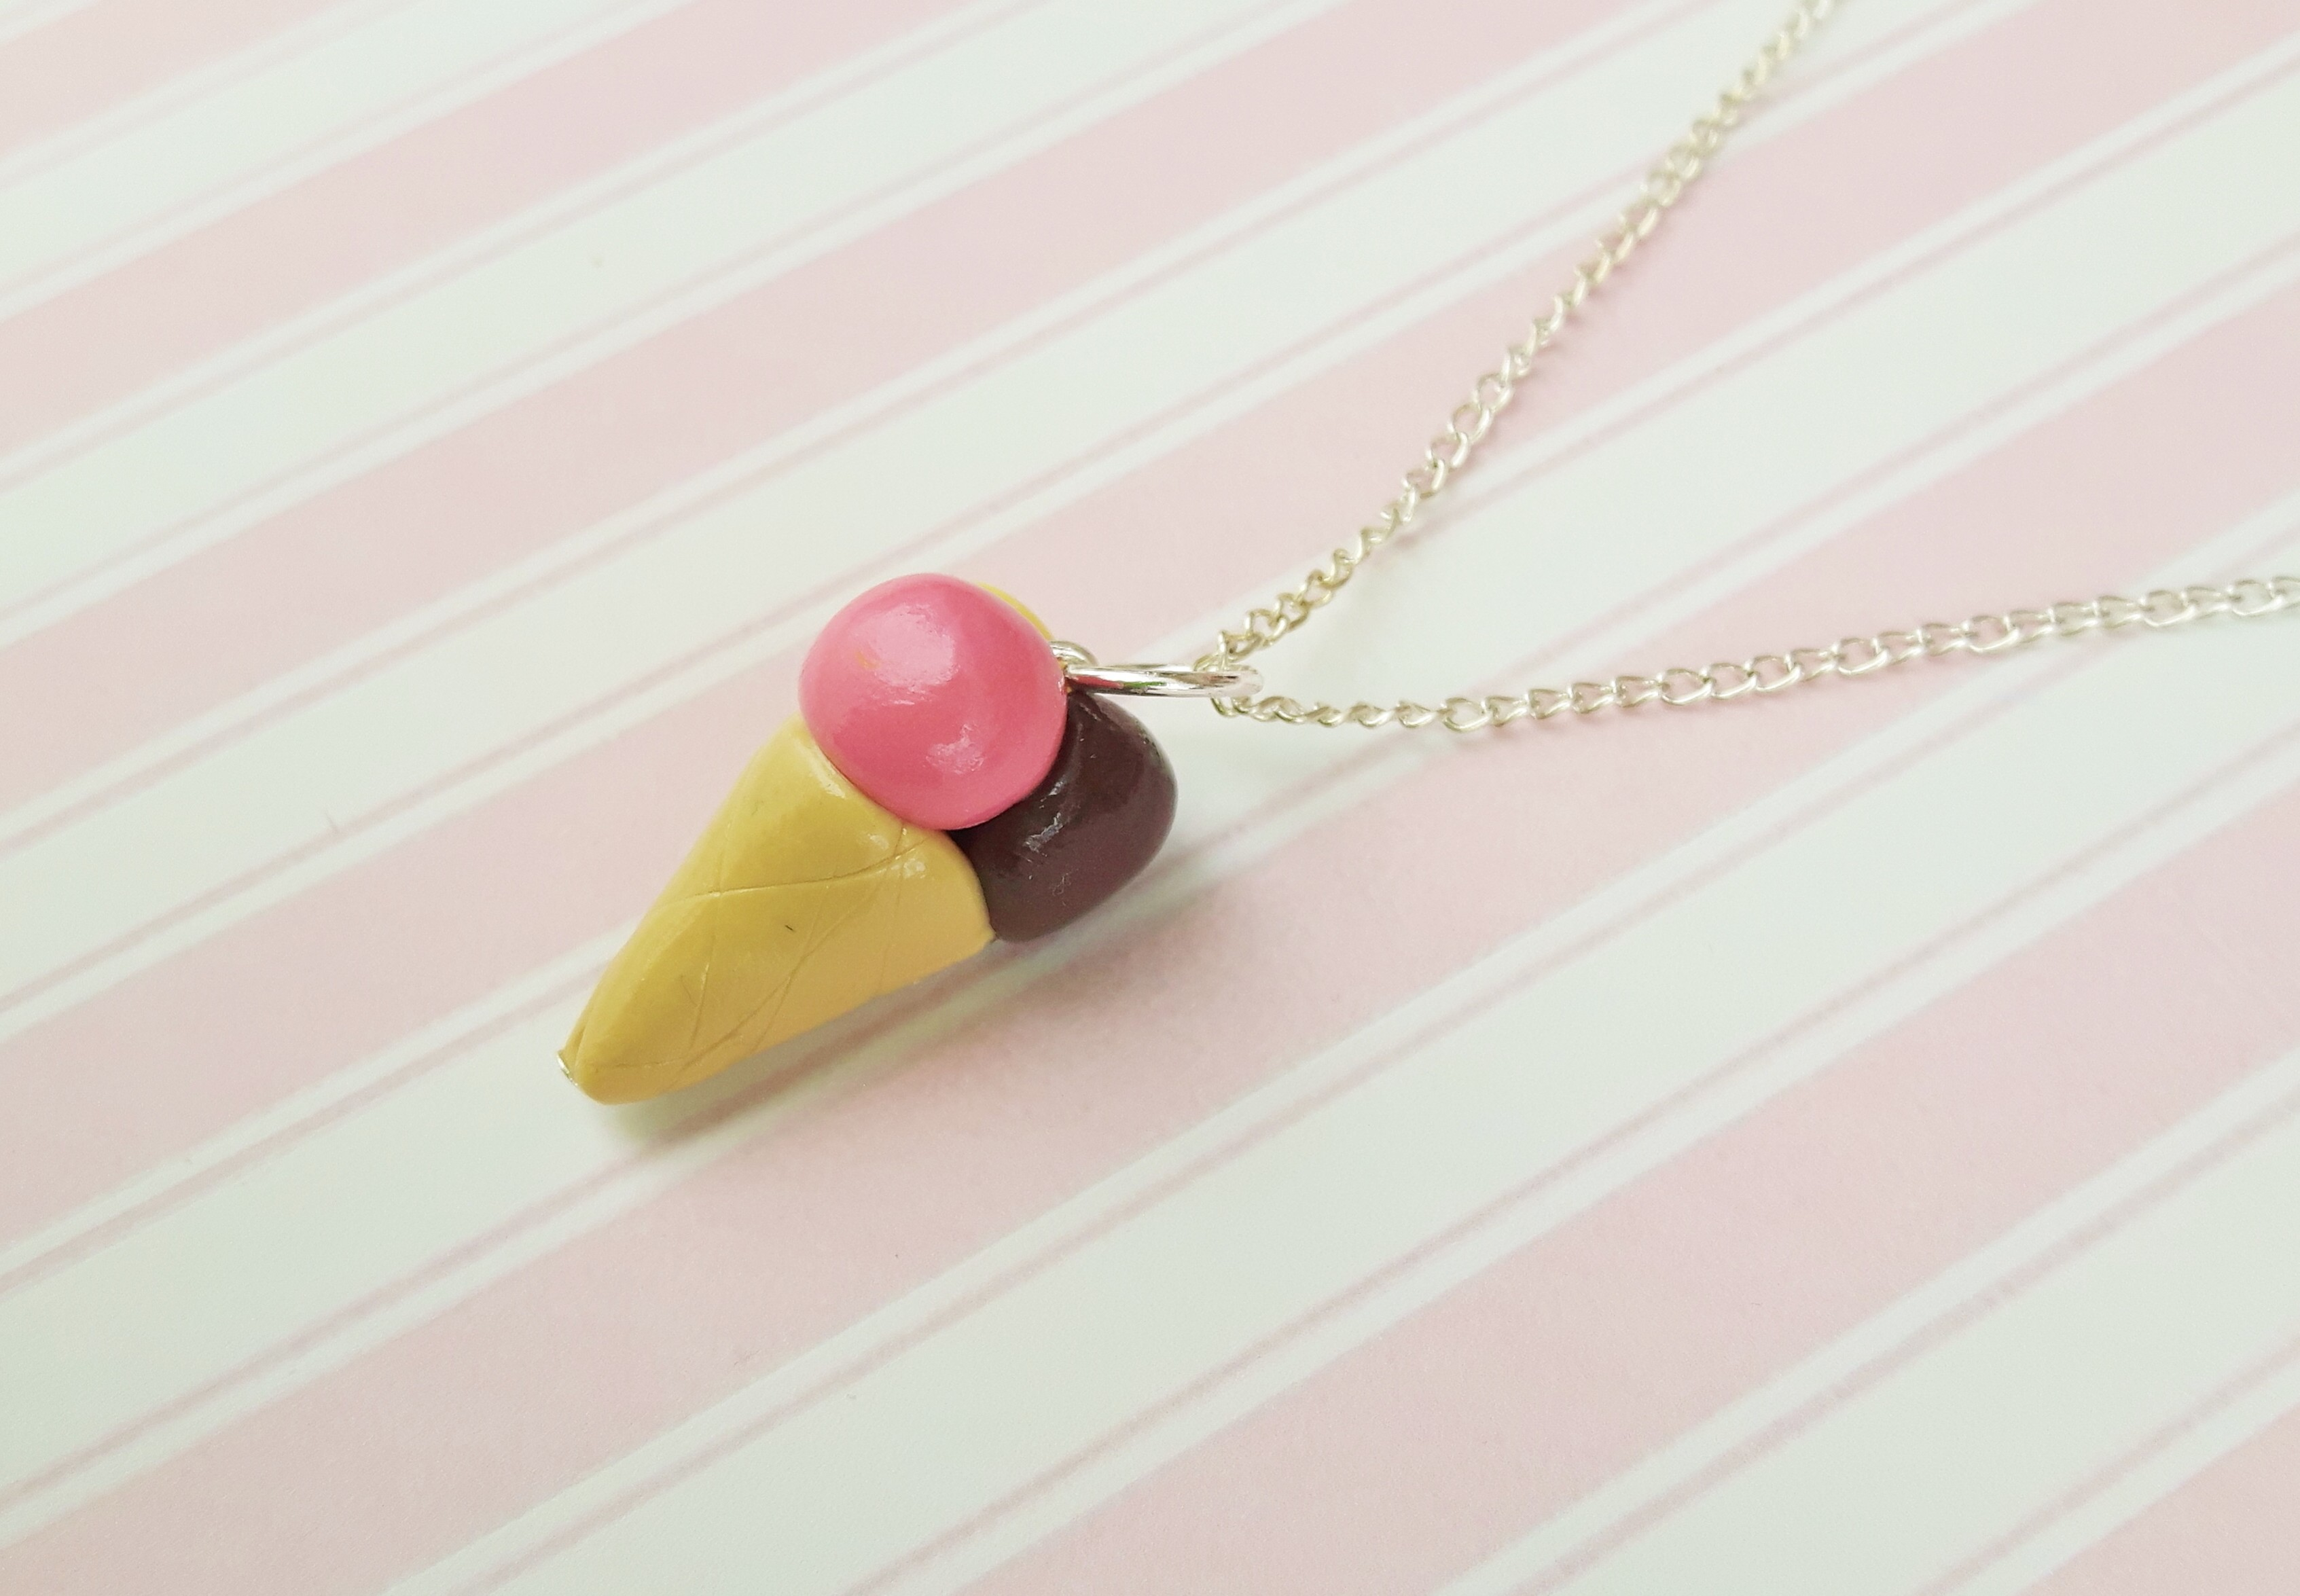 Handmade, cute, sweet, candy, pick 'n' mix, novelty, kitsch, kawaii, jewellery, accessories, gifts, fashion, made from, Fimo, polymer clay, silver, plated, nickel free, in uk, Neapolitan, ice cream, cone, necklace,